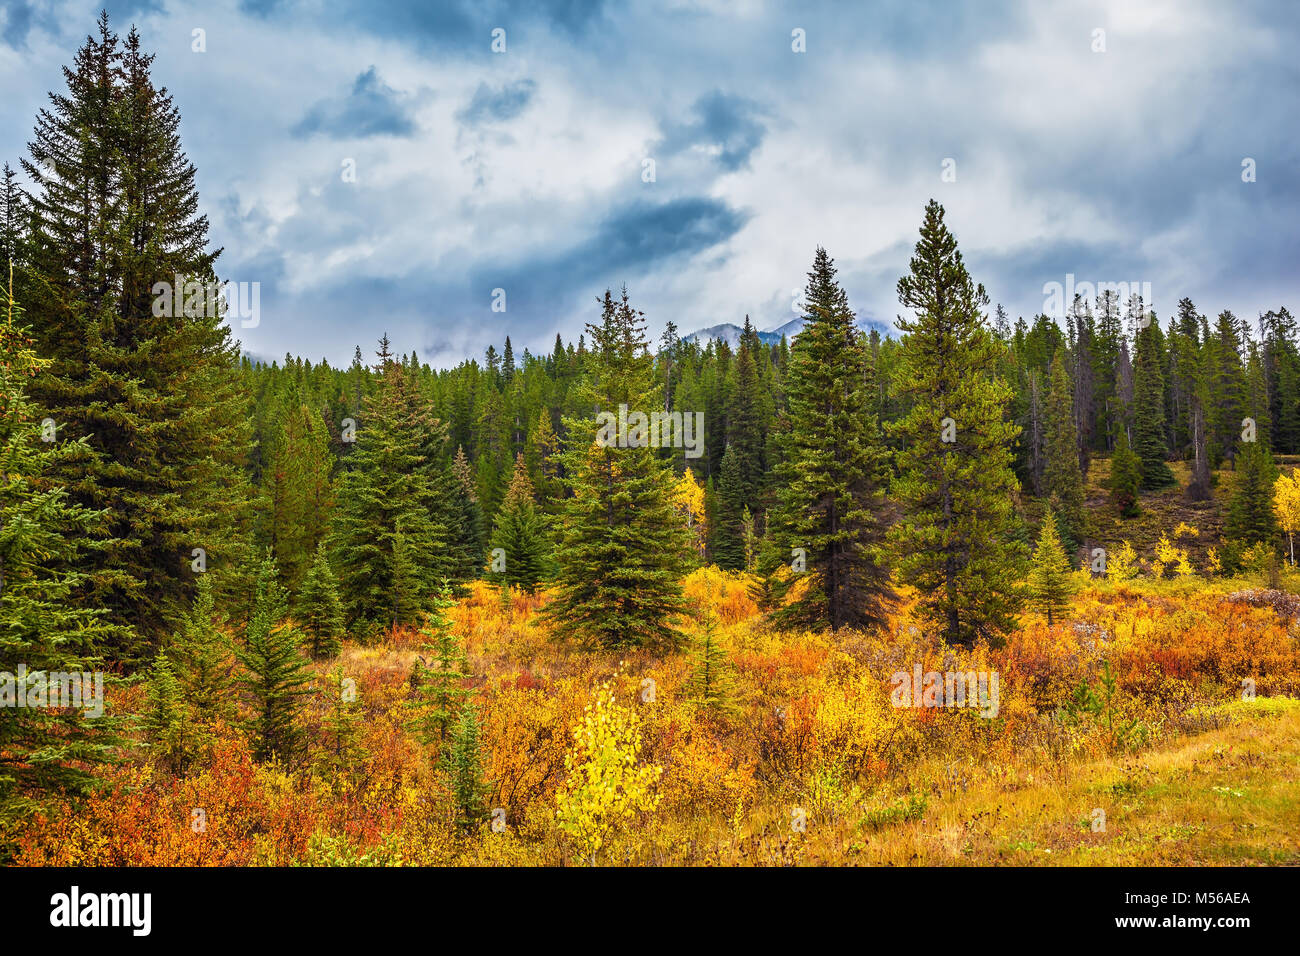 Fine Indian summer in Banff National Park - Stock Image